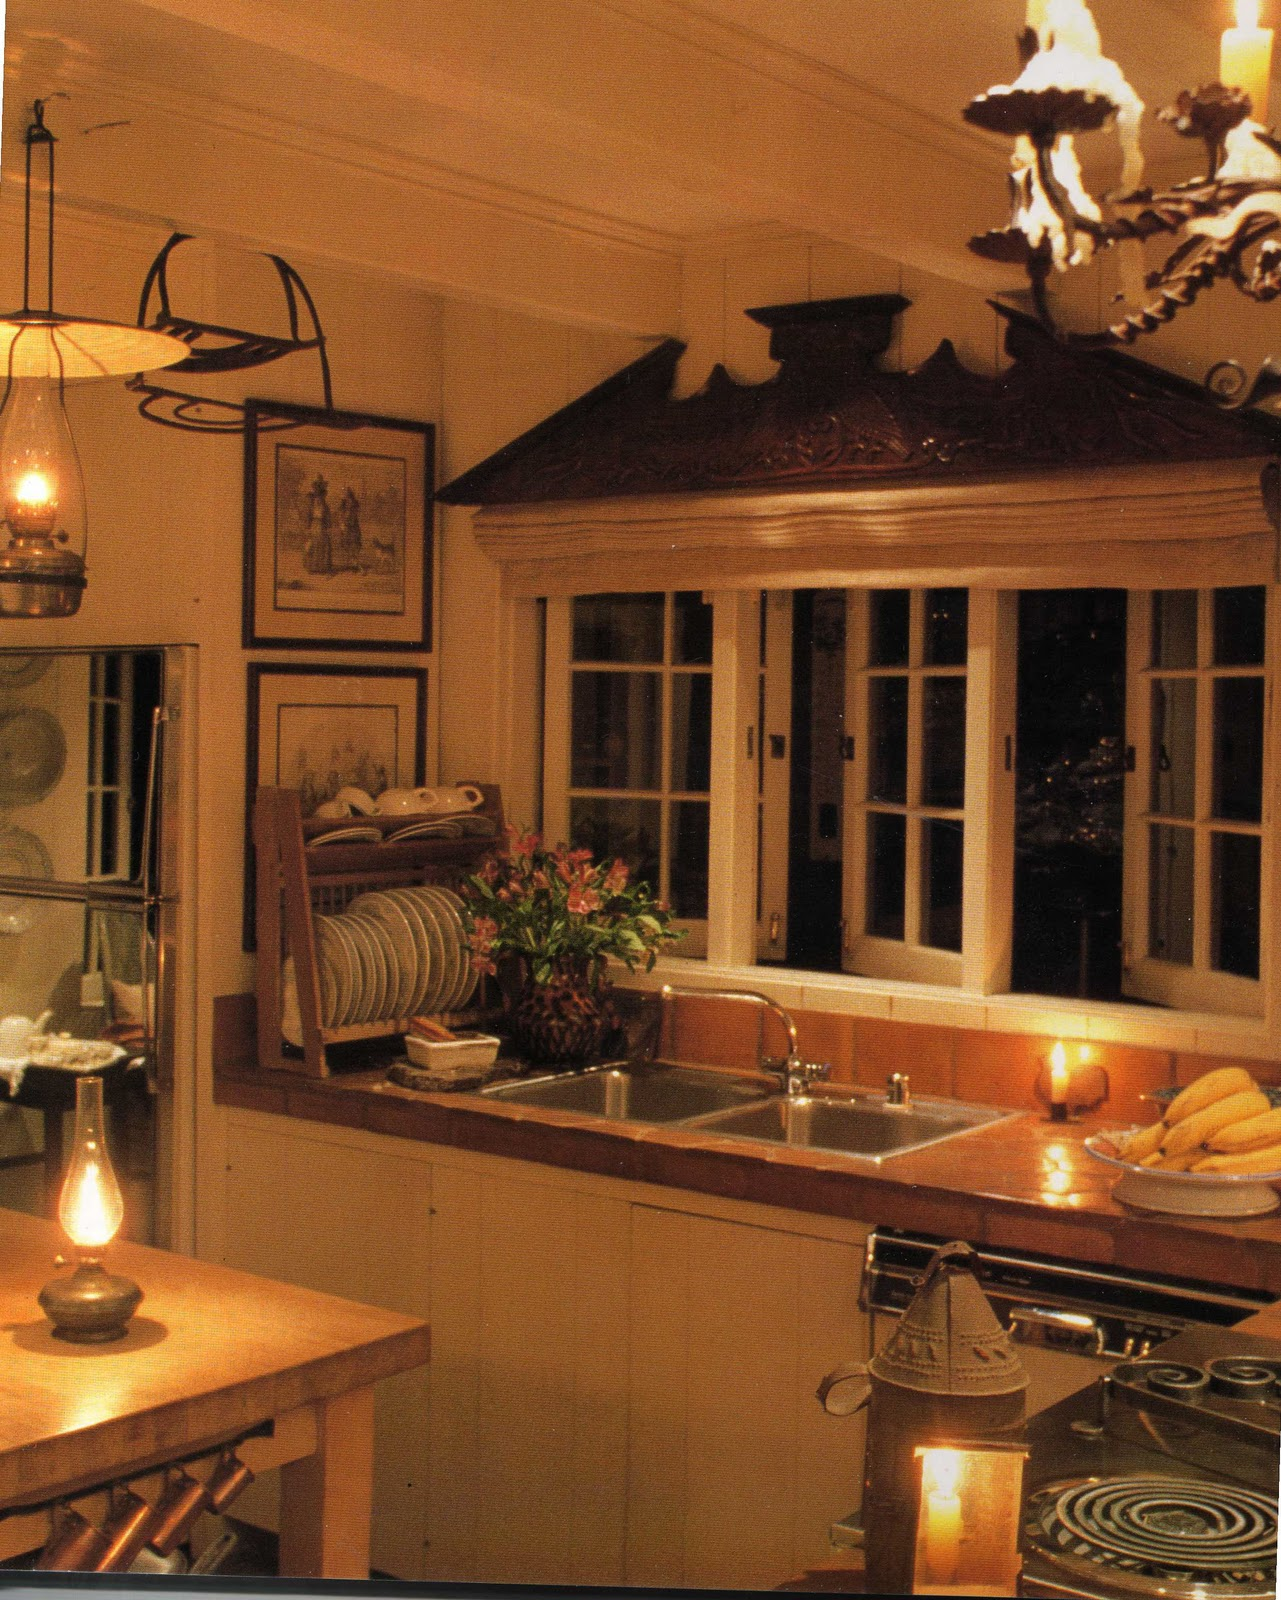 BOXWOOD TERRACE: A Cottage Kitchen